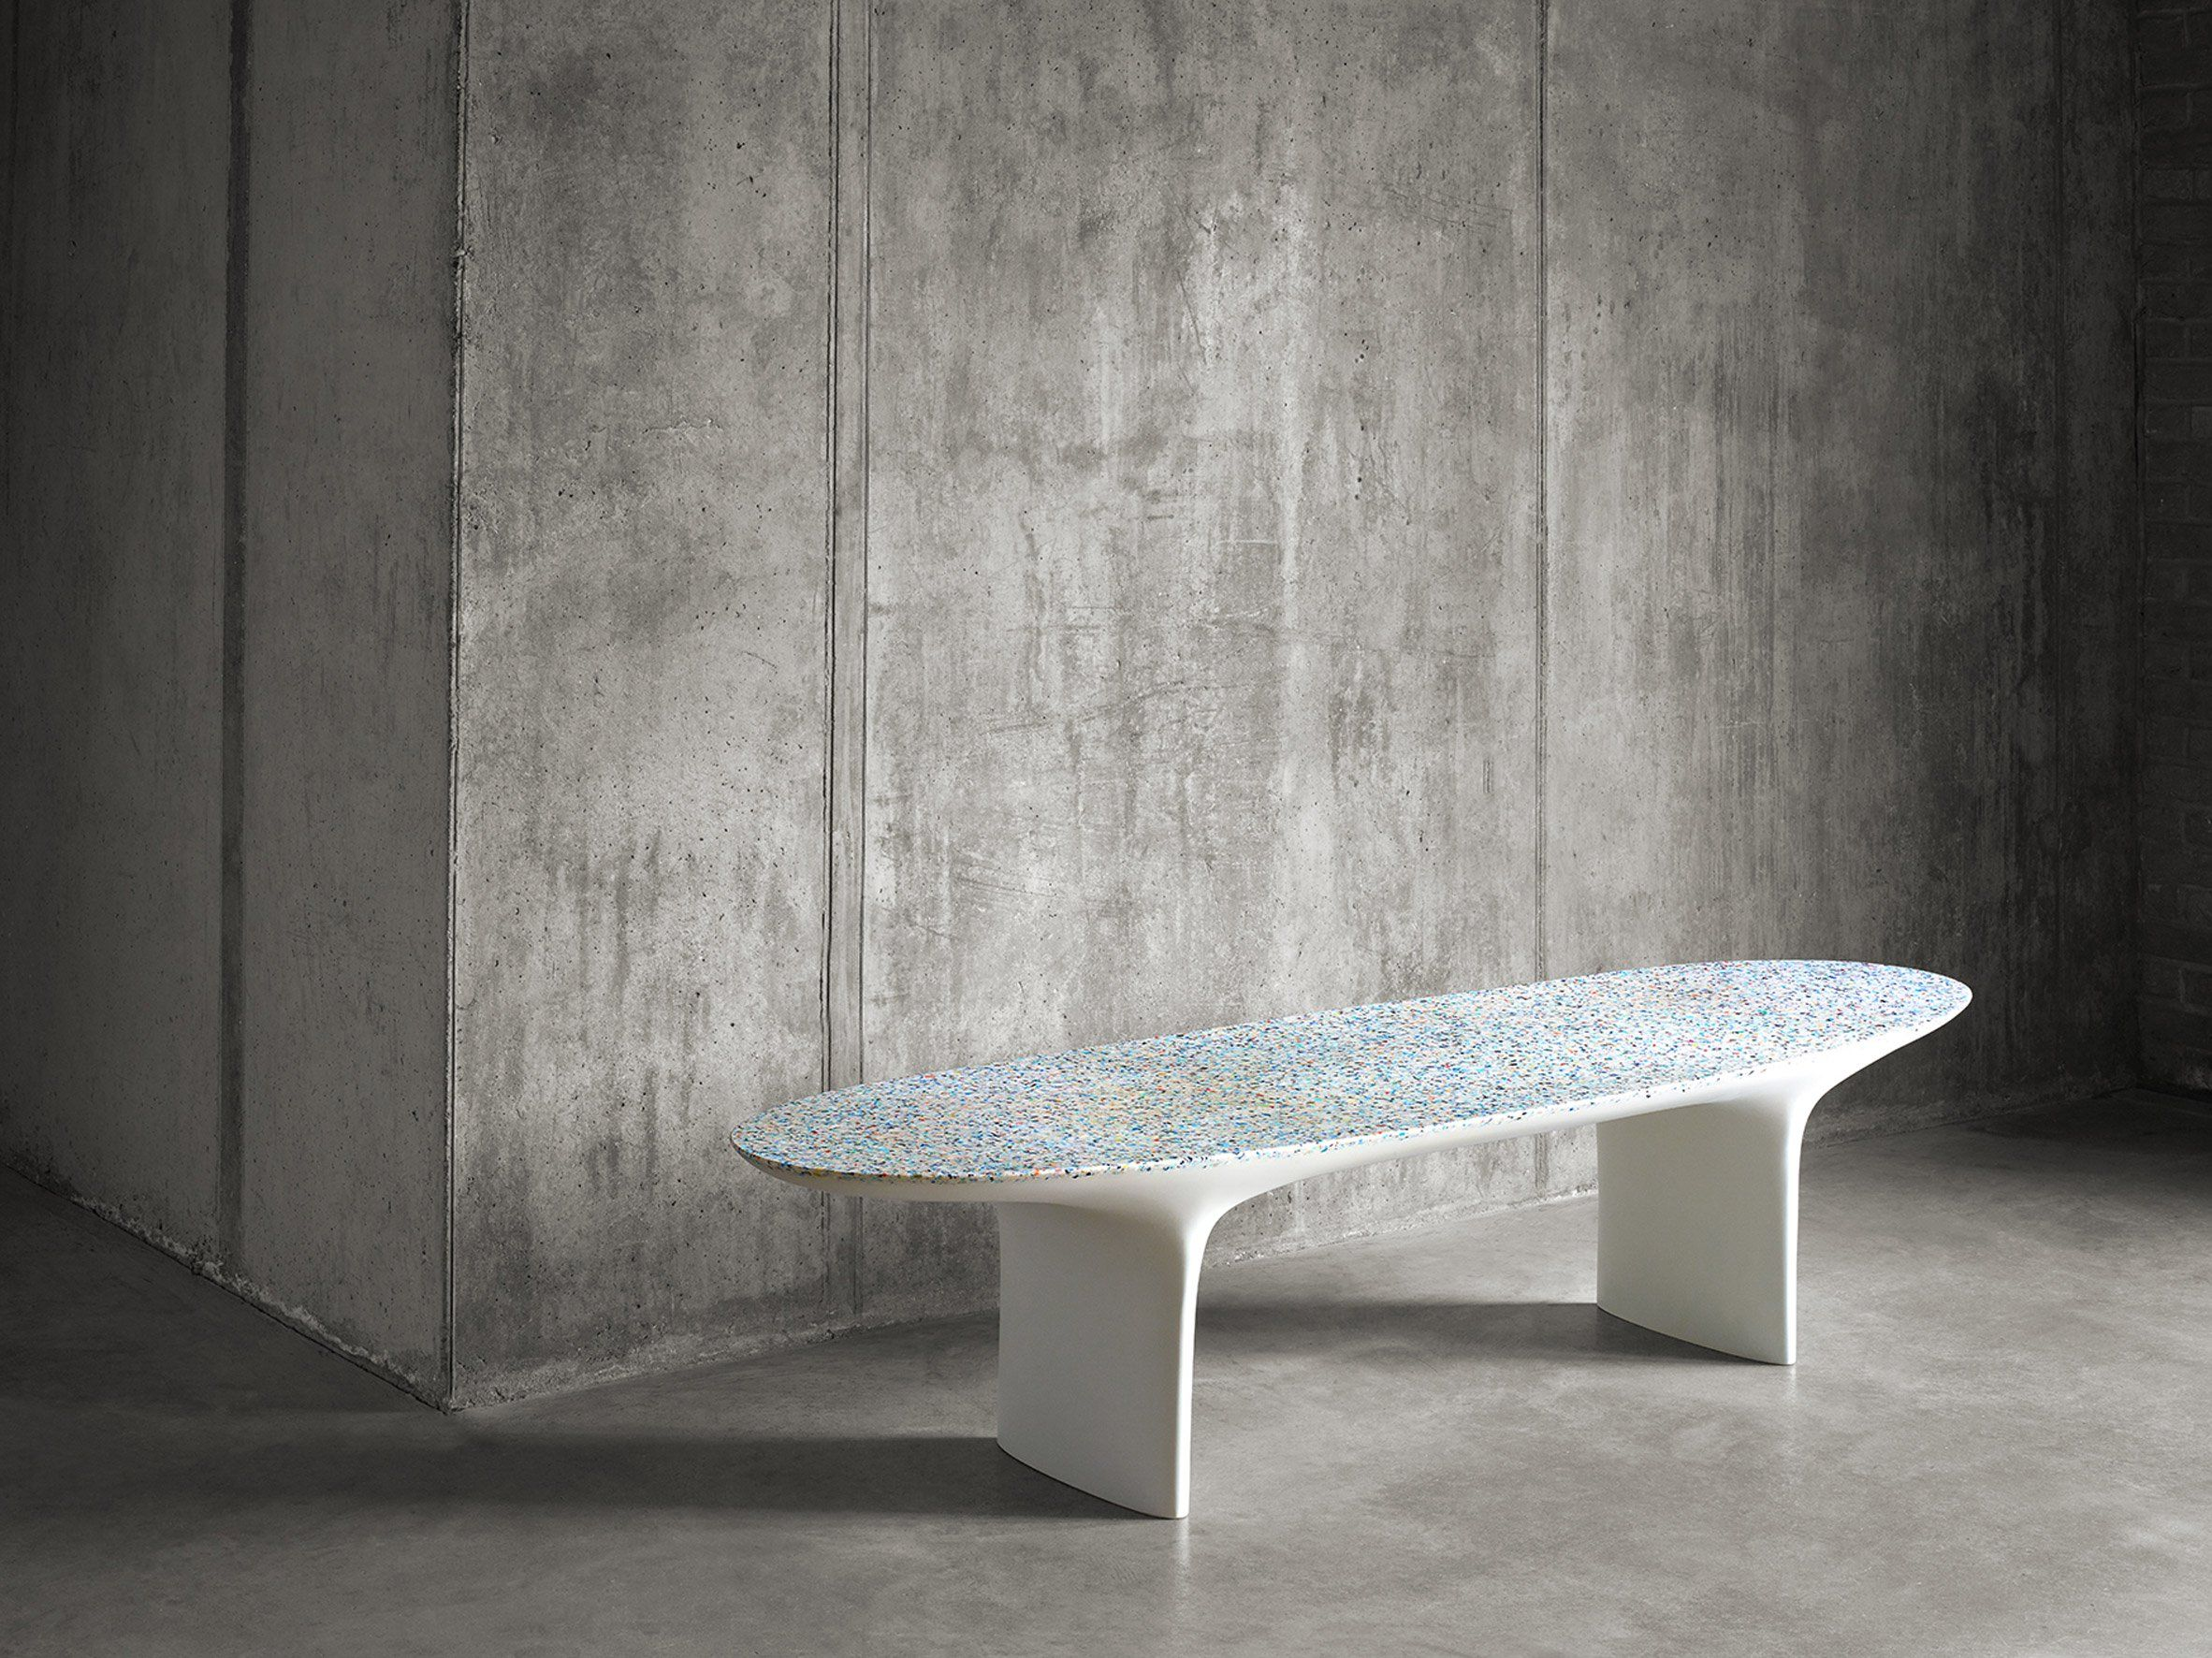 Designer Bro Neill has worked with recycled ocean plastic to produce new furniture pieces and